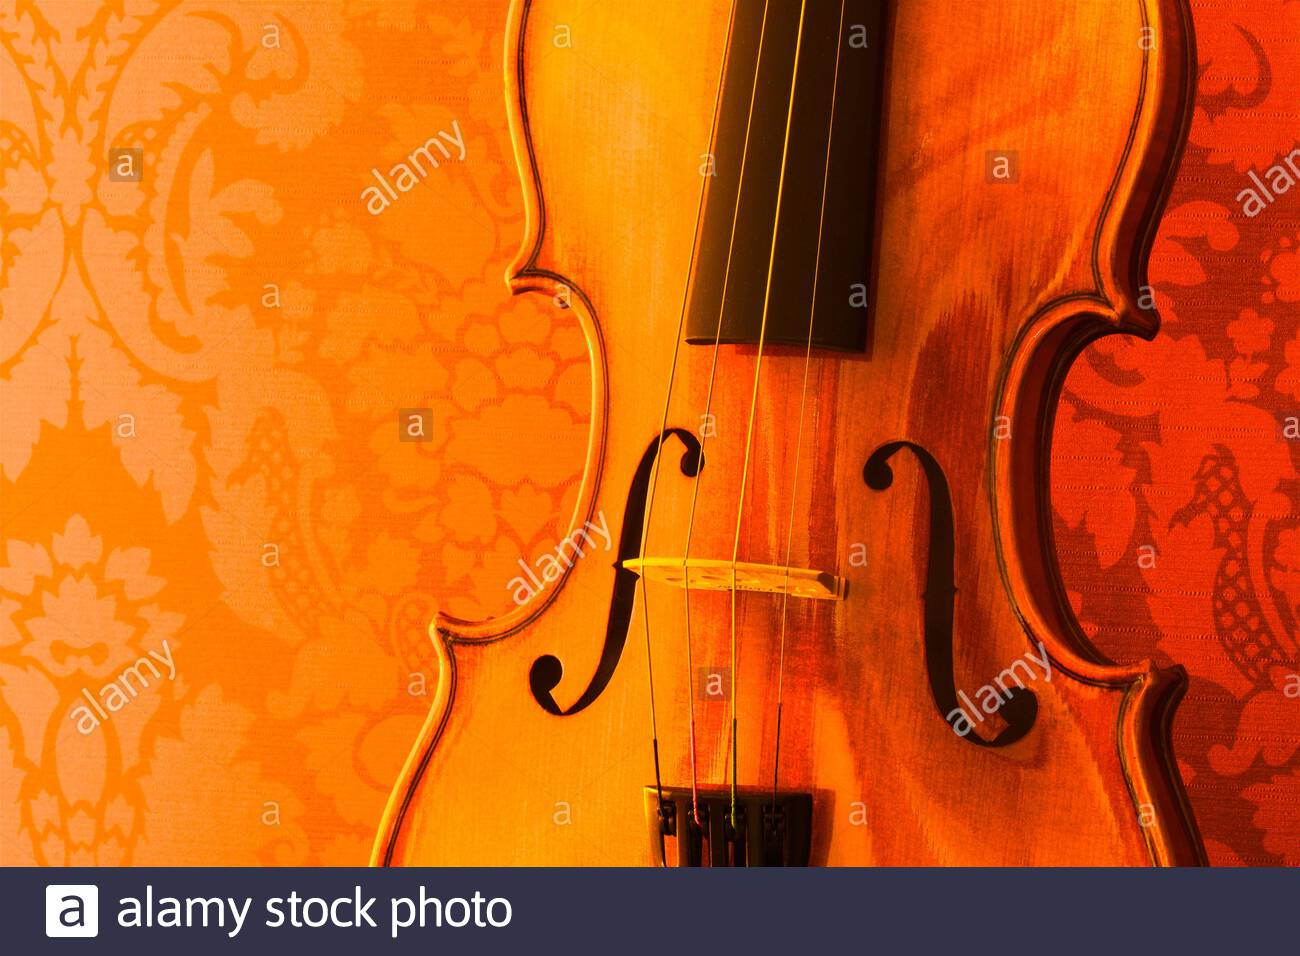 close-up-of-the-body-of-a-violin-in-hues-of-orange-and-red-against-a-wallpaper-background-2AT7665.jpg